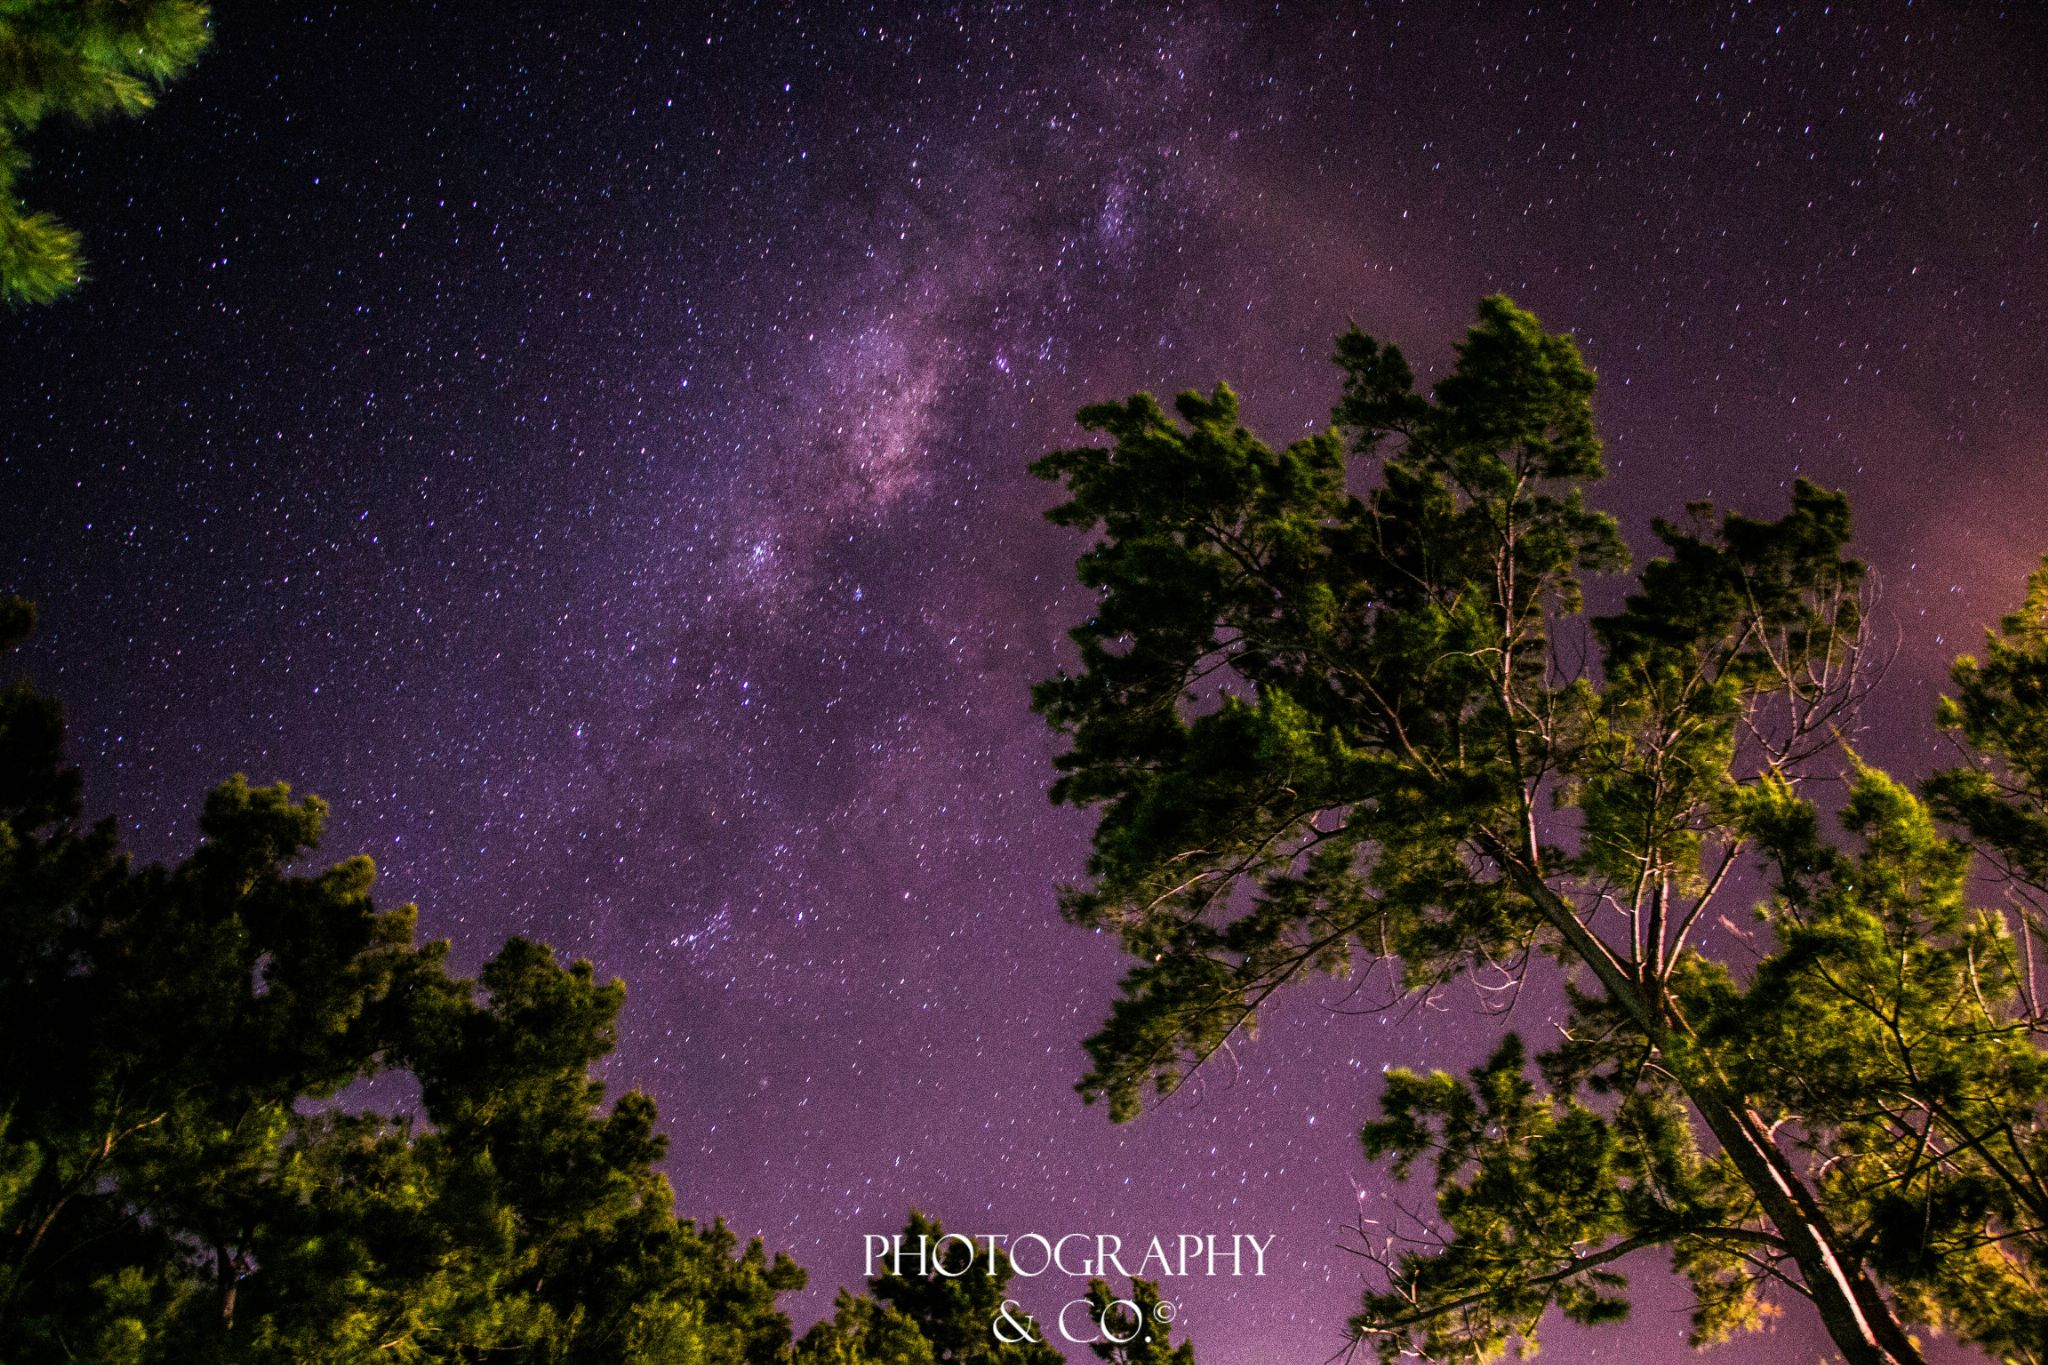 Stars in the sky - Milky Way  by olivier.samcawfreve